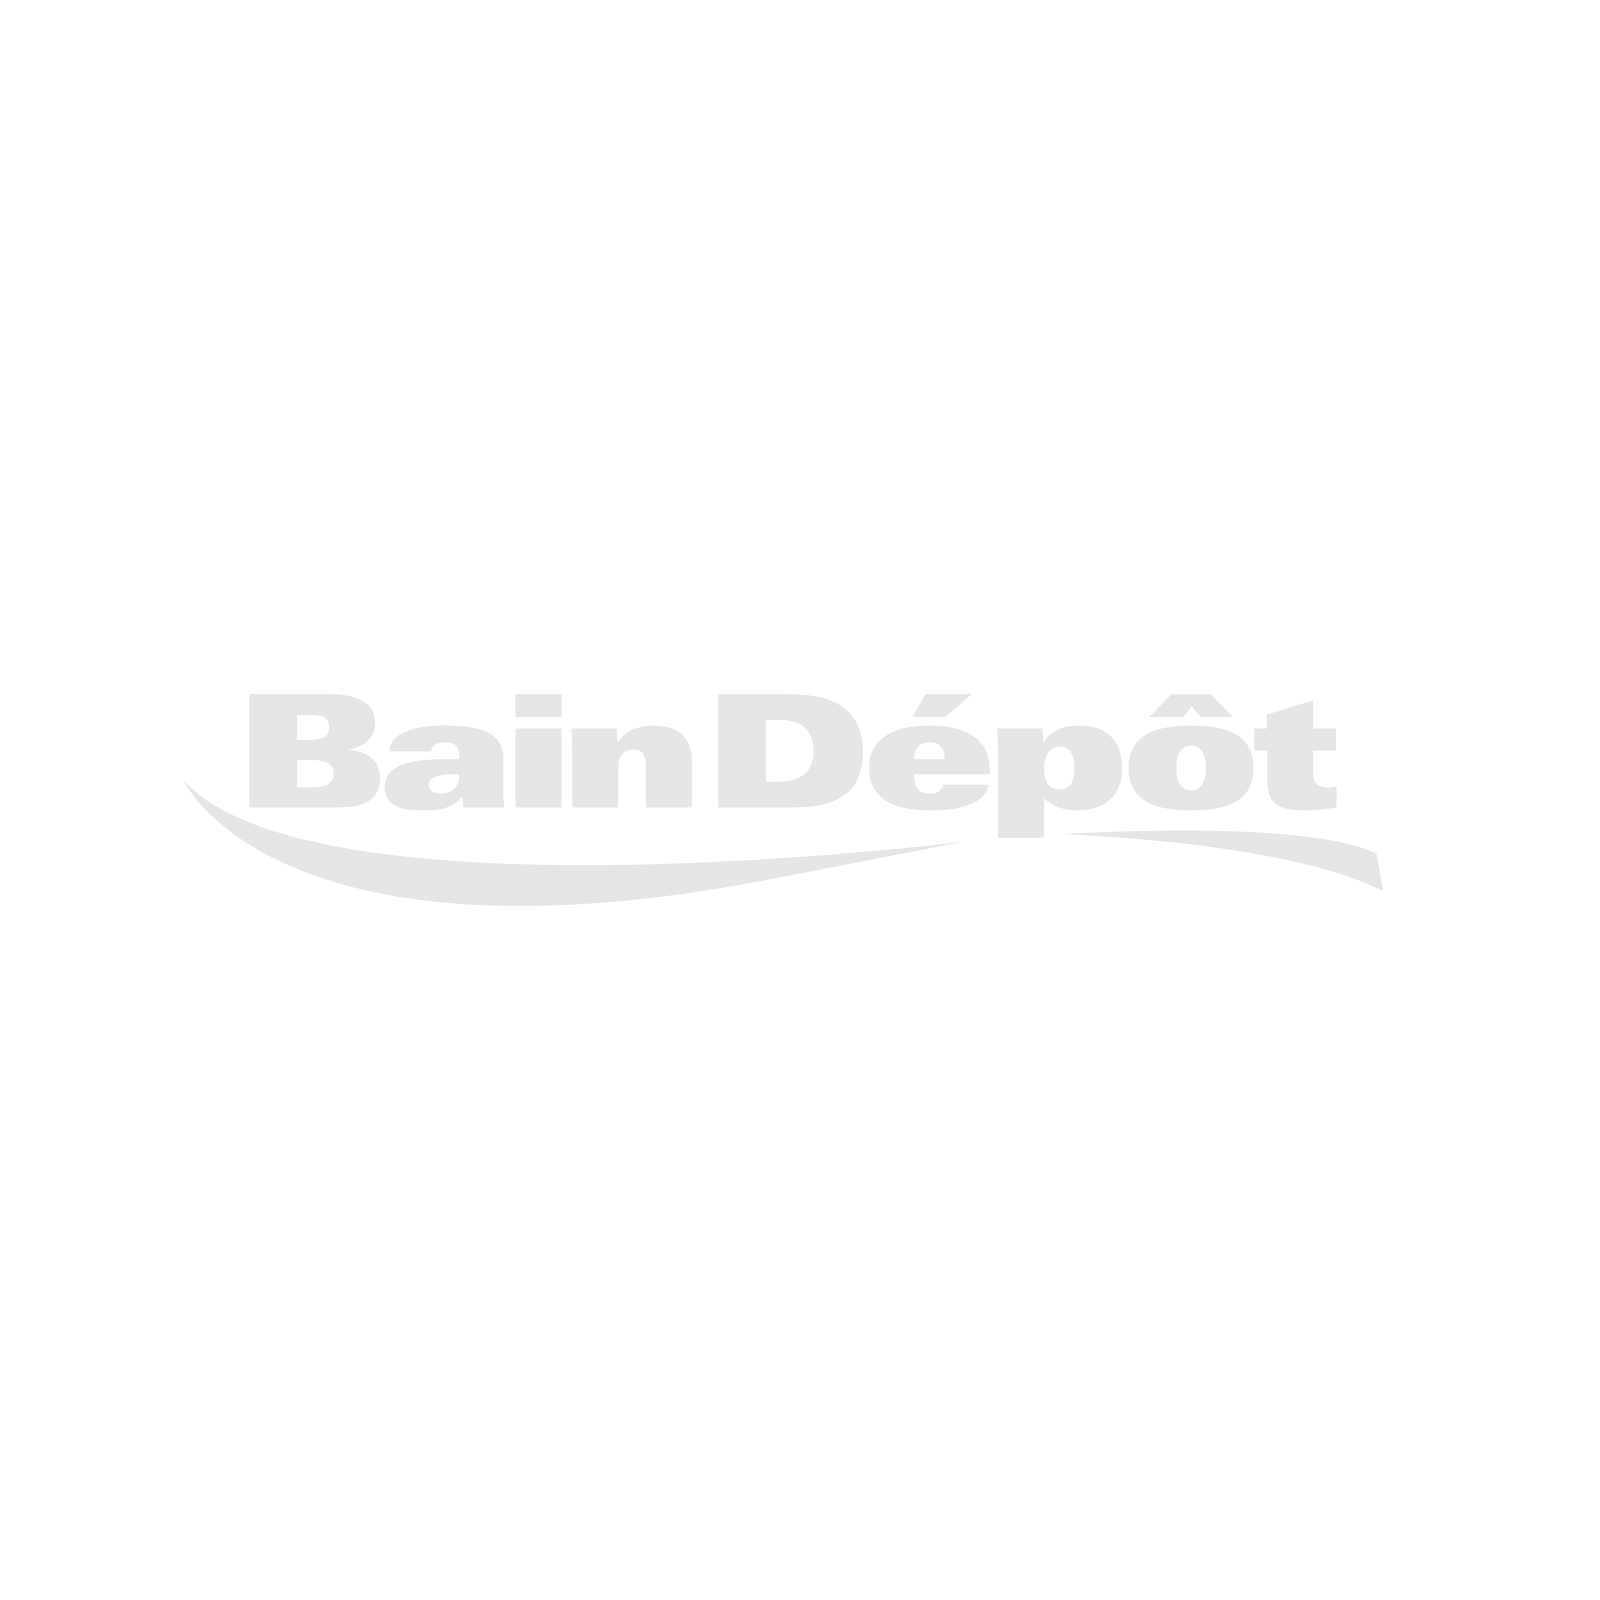 Brushed nickel single-hole bathroom sink faucet with waterfall effect and pop-up